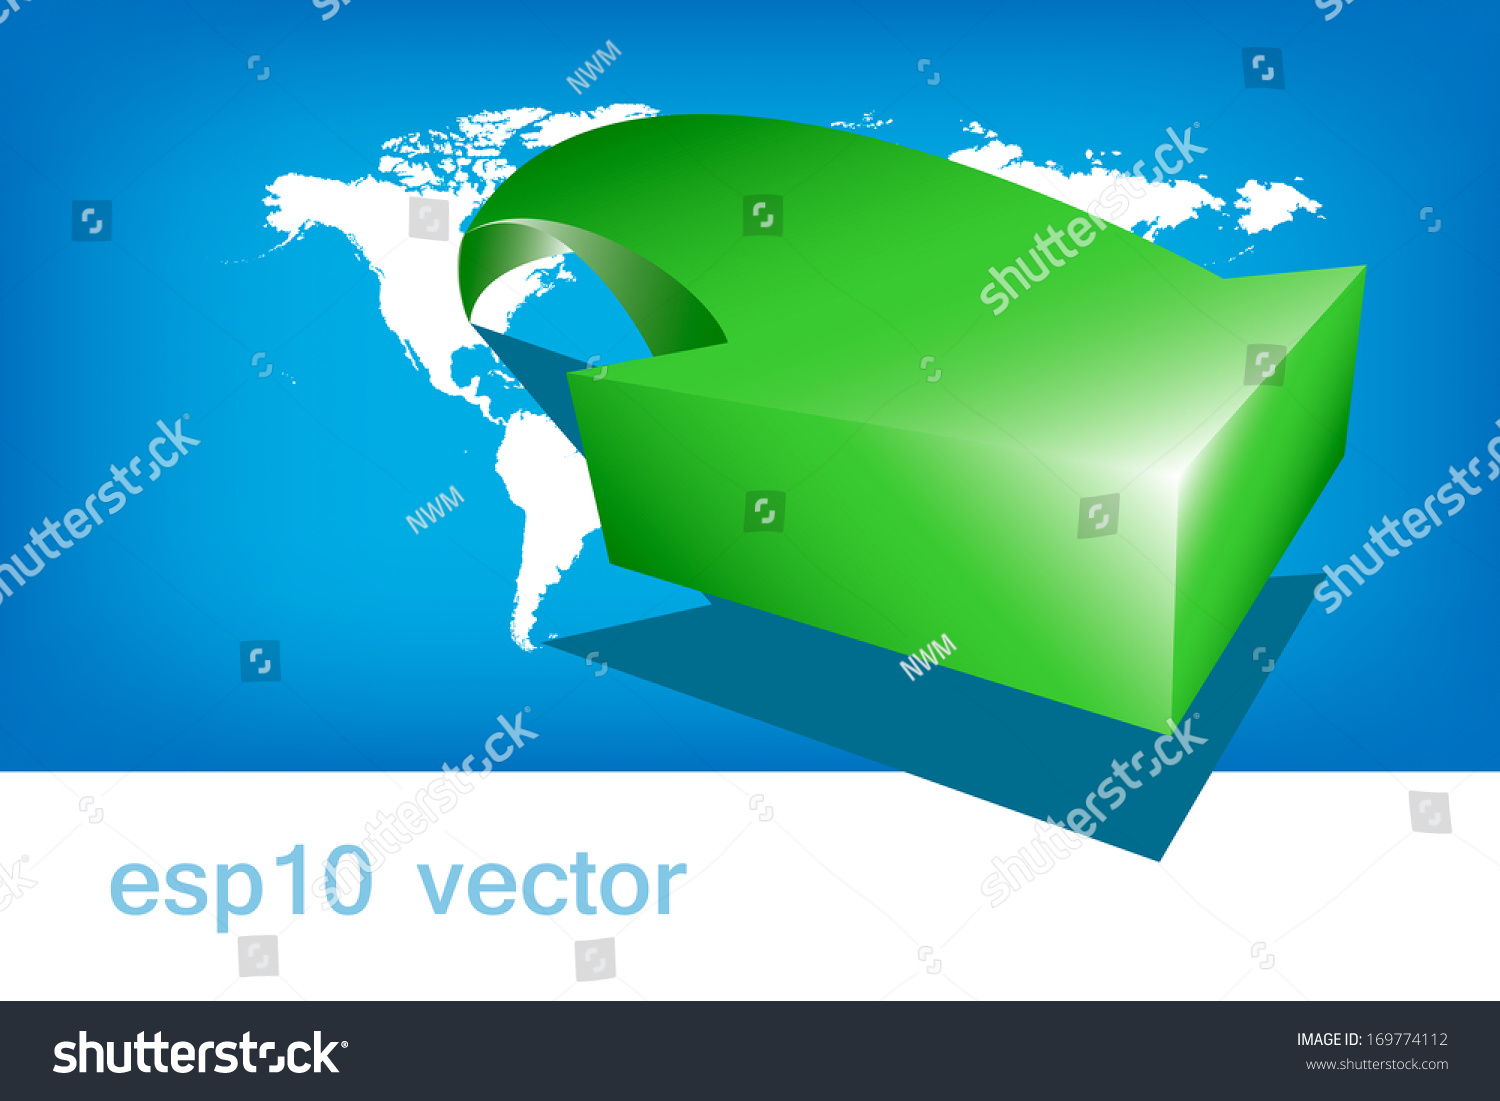 World map arrow green america stock vector 169774112 shutterstock world map arrow green america gumiabroncs Image collections